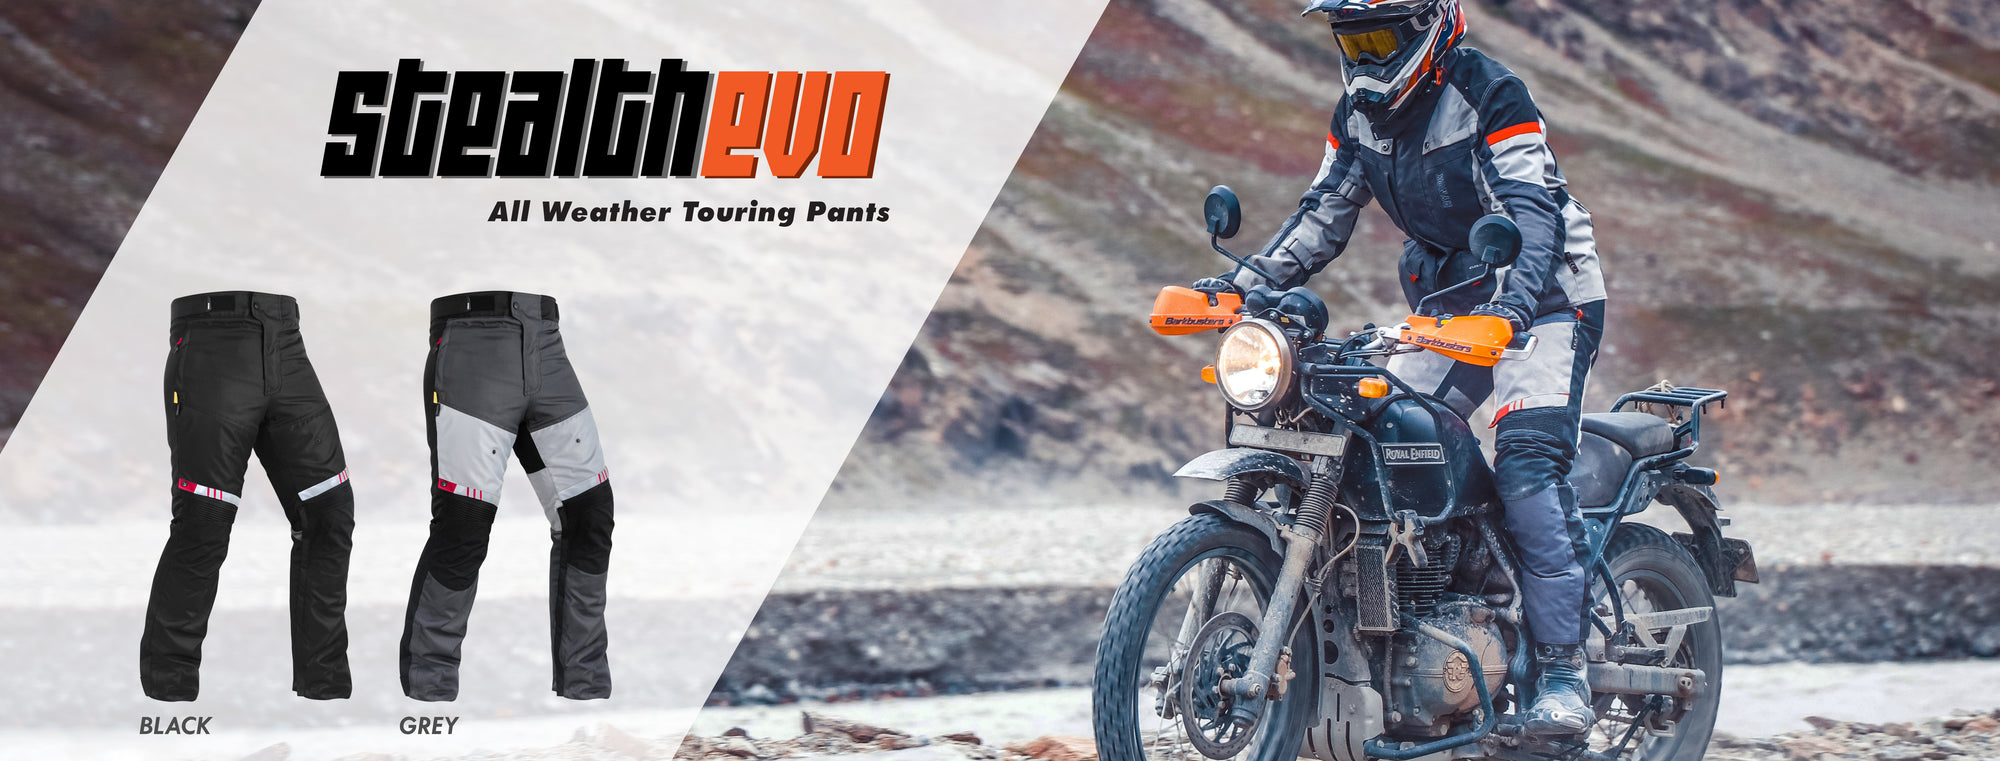 Motorcycle Protective Gear, Luggage and Accessories – Rynox